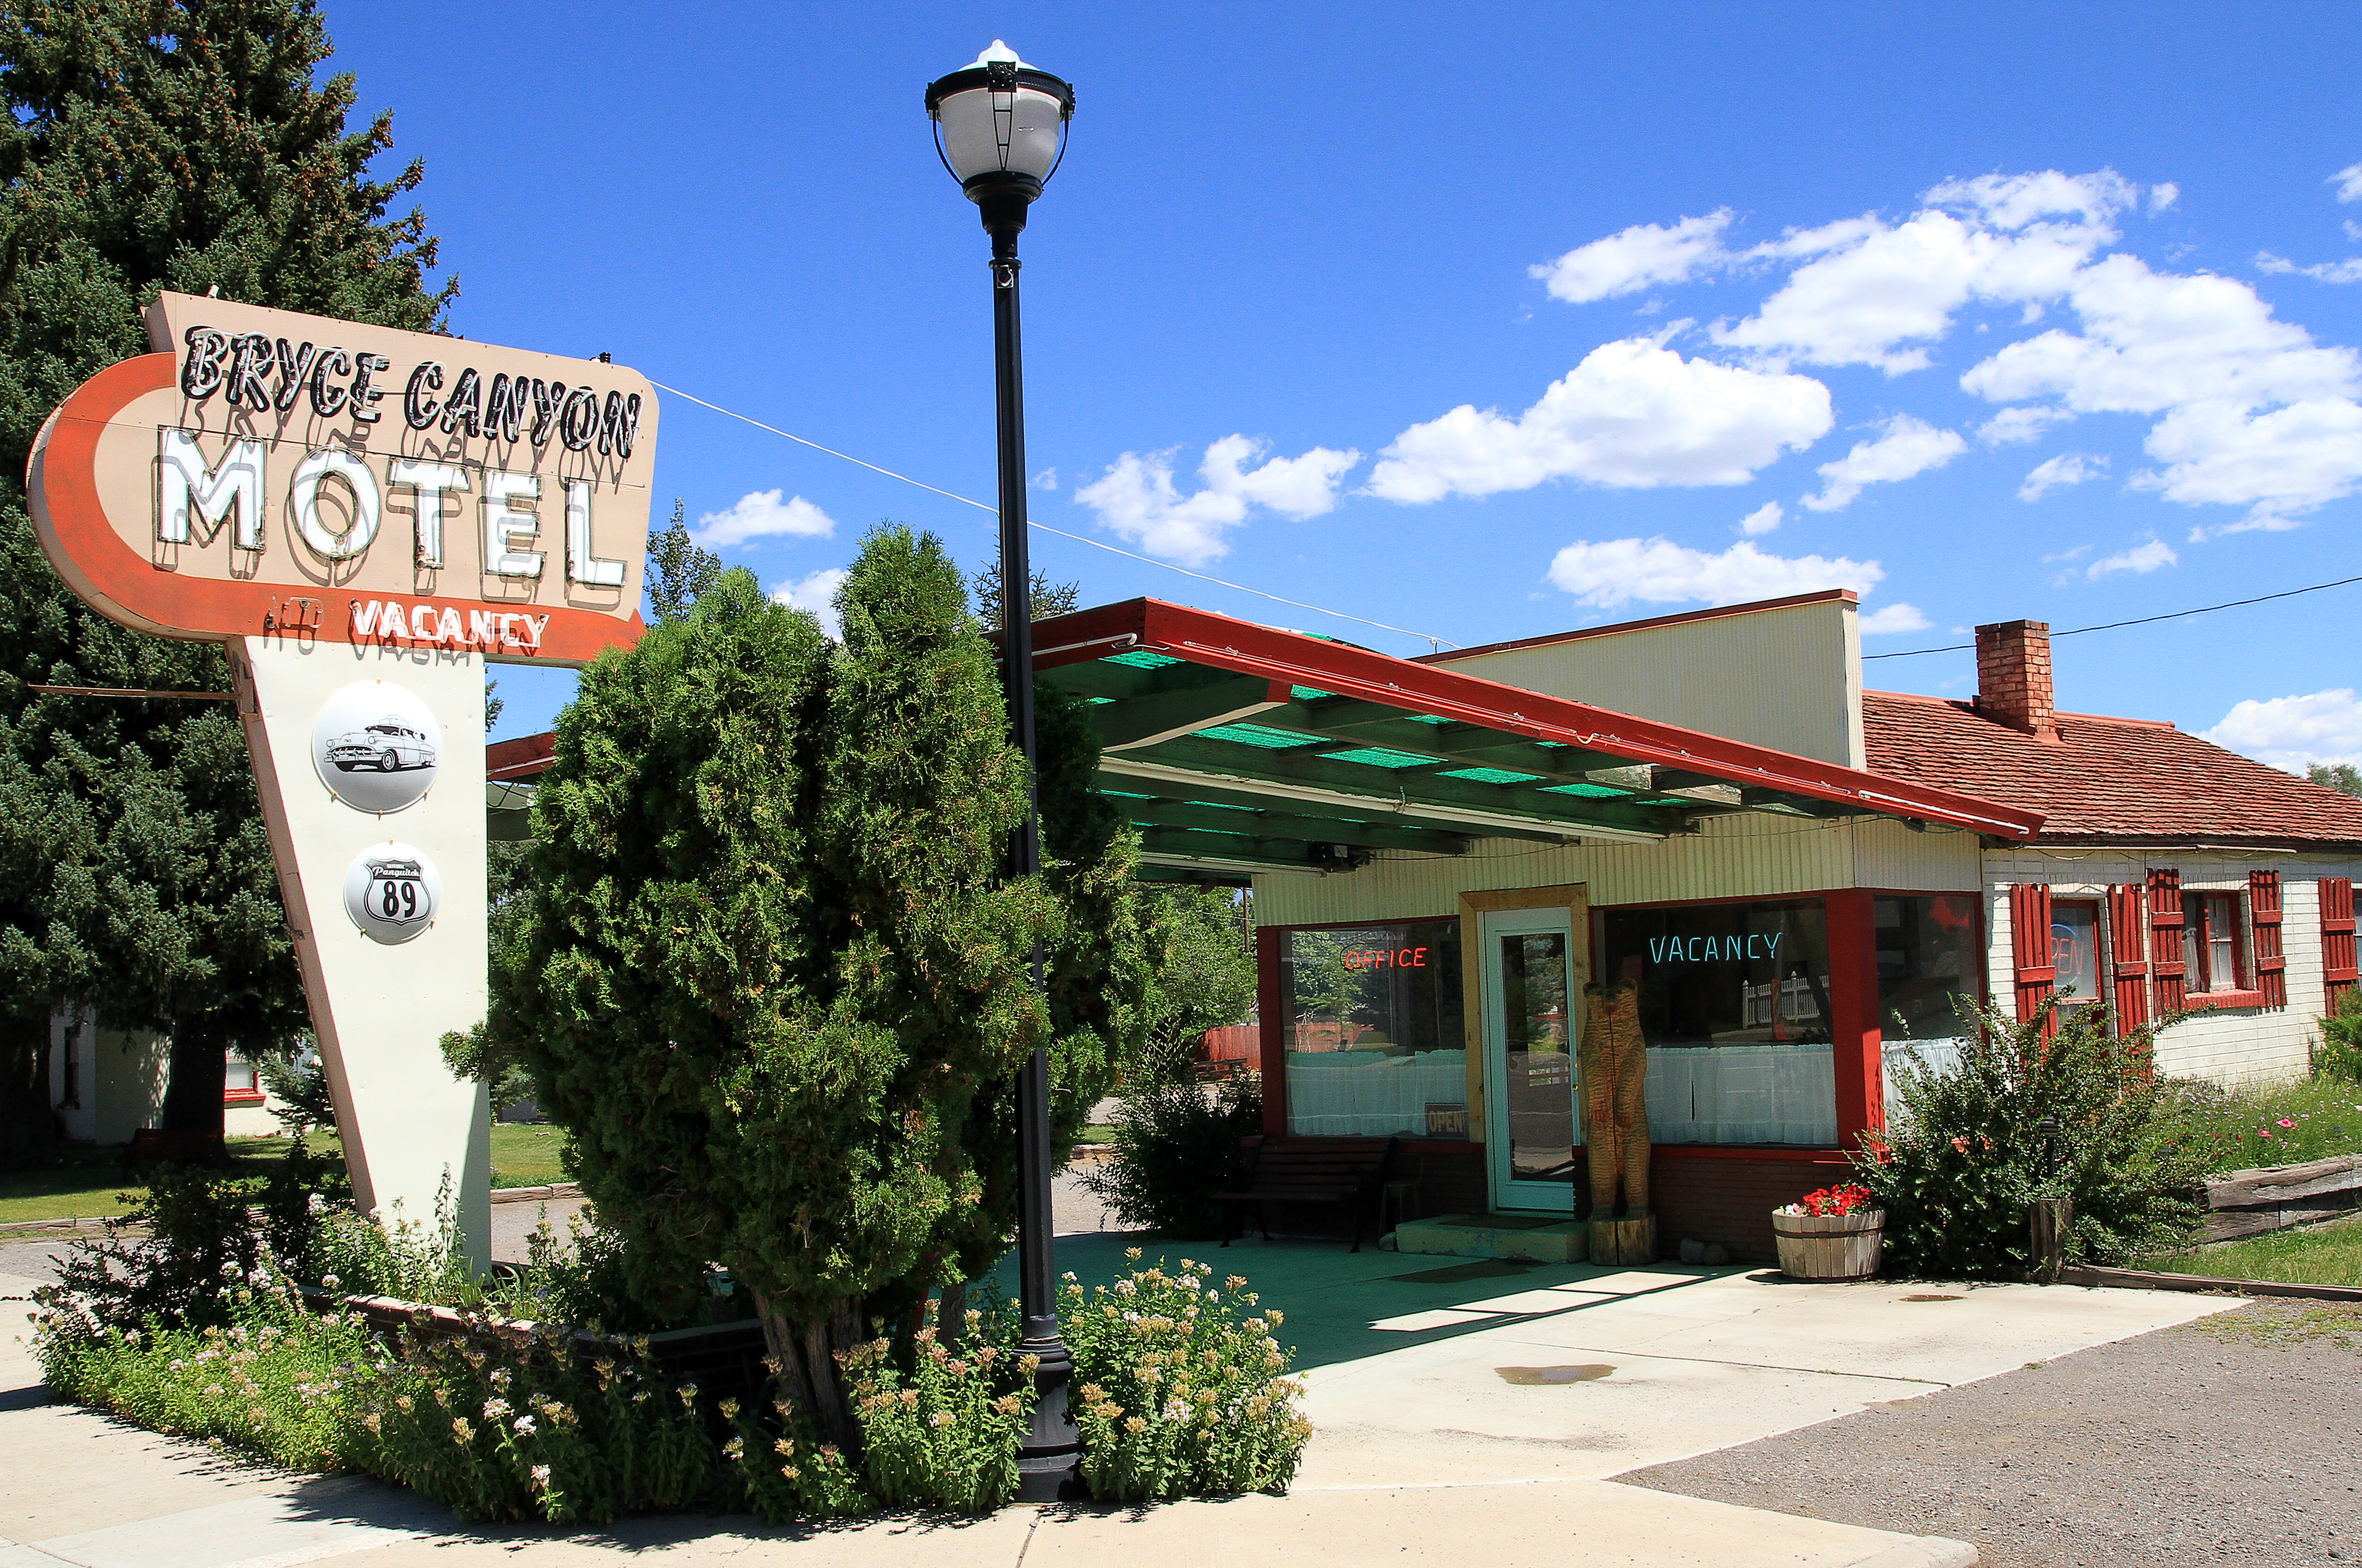 Bryce Canyon Motel - 308 North Main Street, Panguitch, Utah U.S.A. - August 14, 2013